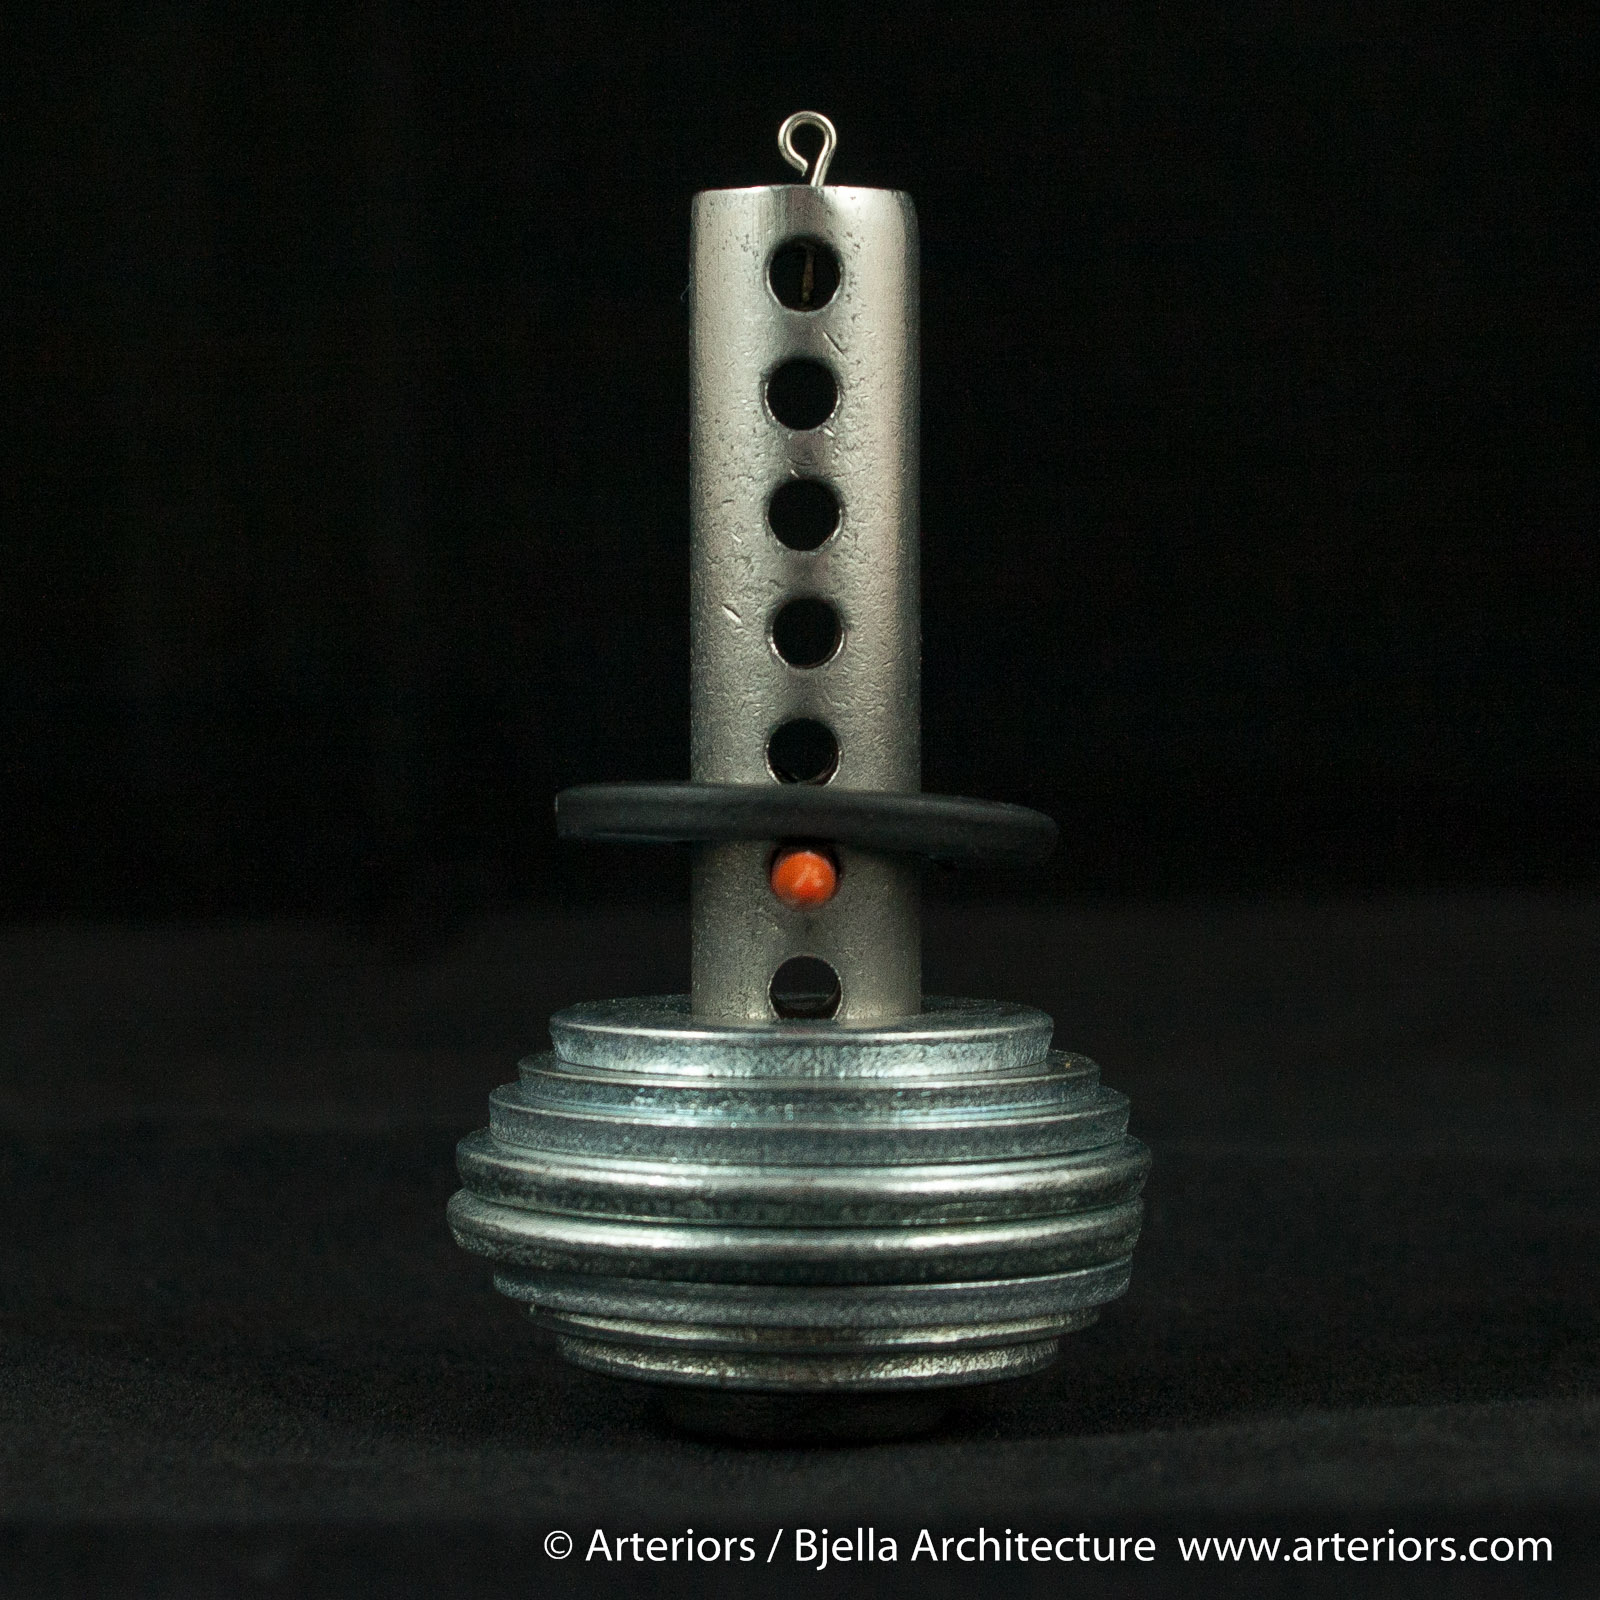 Bjella Snowman Ornament - Day 6 - Metal-17